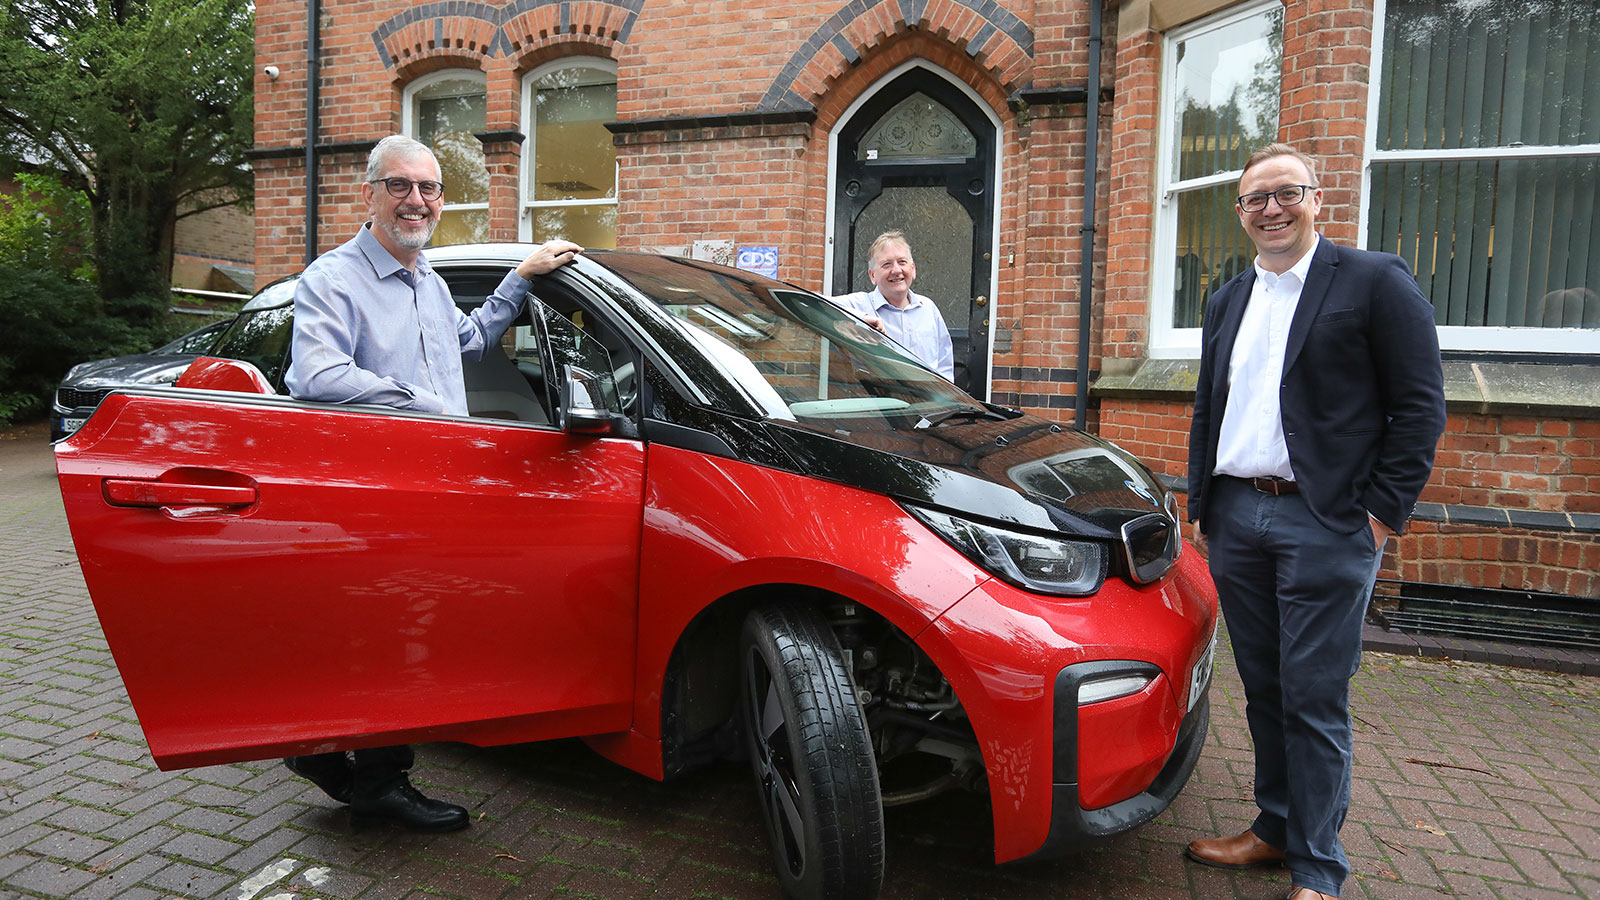 CDS plans hybrid and all-electric vehicle fleet as part of broader green initiative